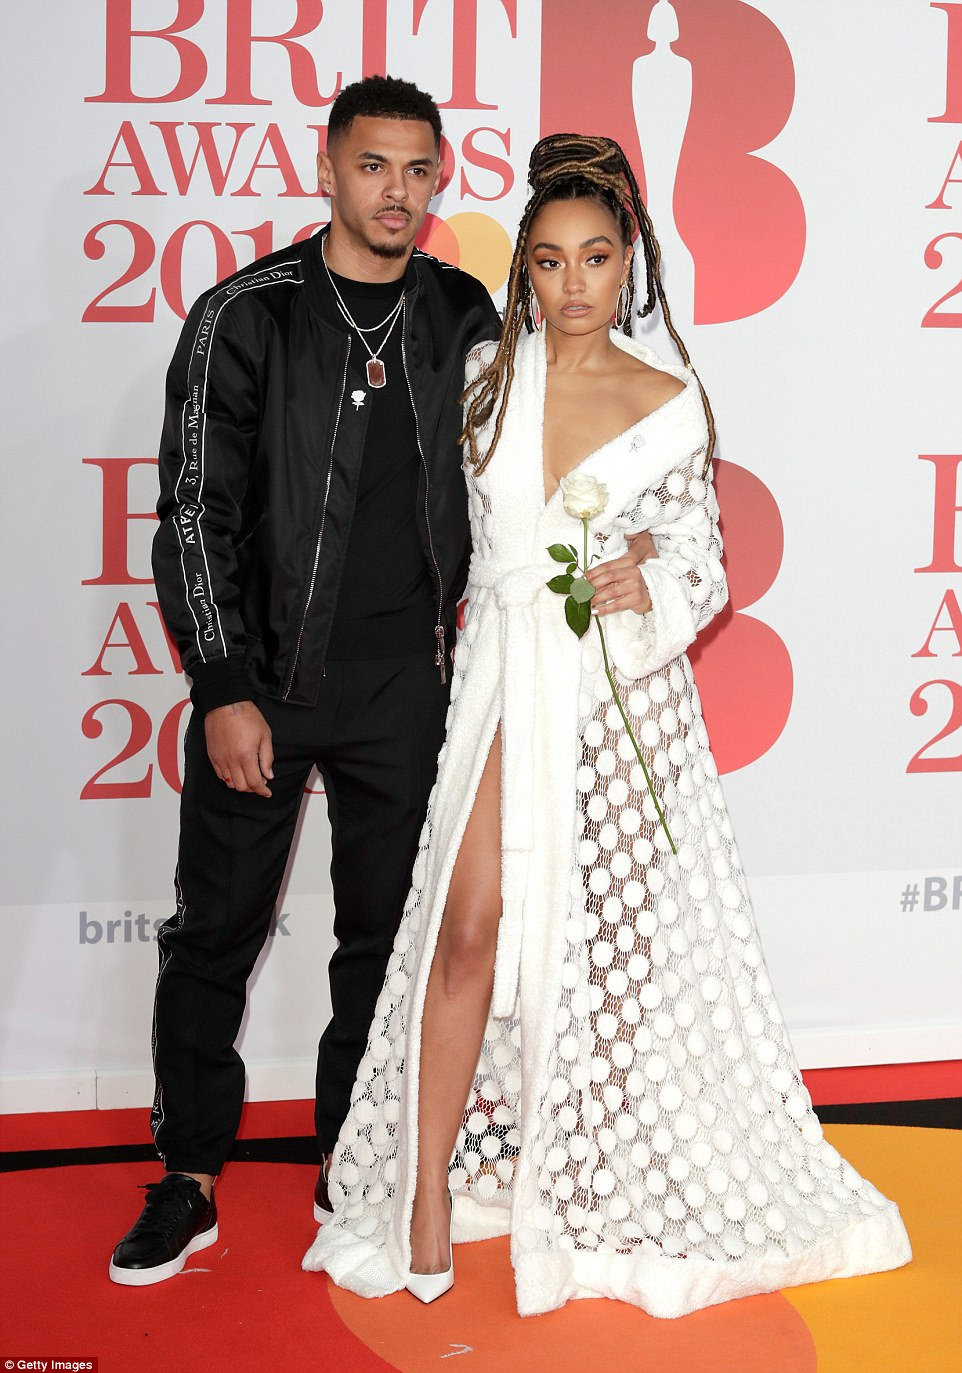 With her man: Leigh-Anne was joined by boyfriend Andre Gray at the event as she turned heads in her eye-catching white gown, matching stilettos and diamond jewellery by Beards